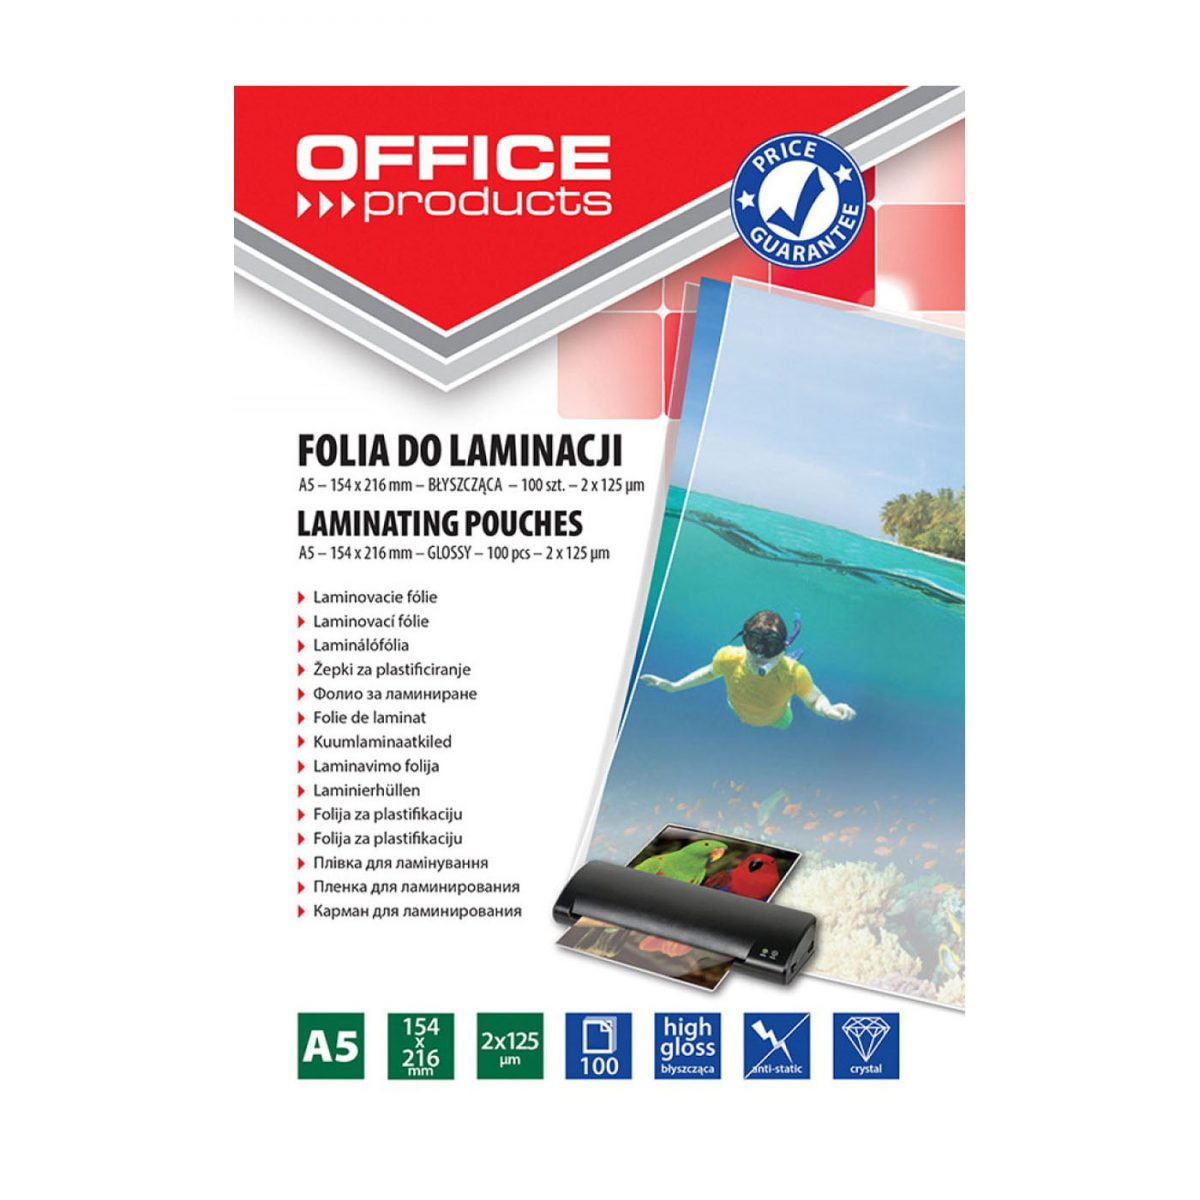 Folie laminare A5, 125 microni, 100buc/top, Office Products